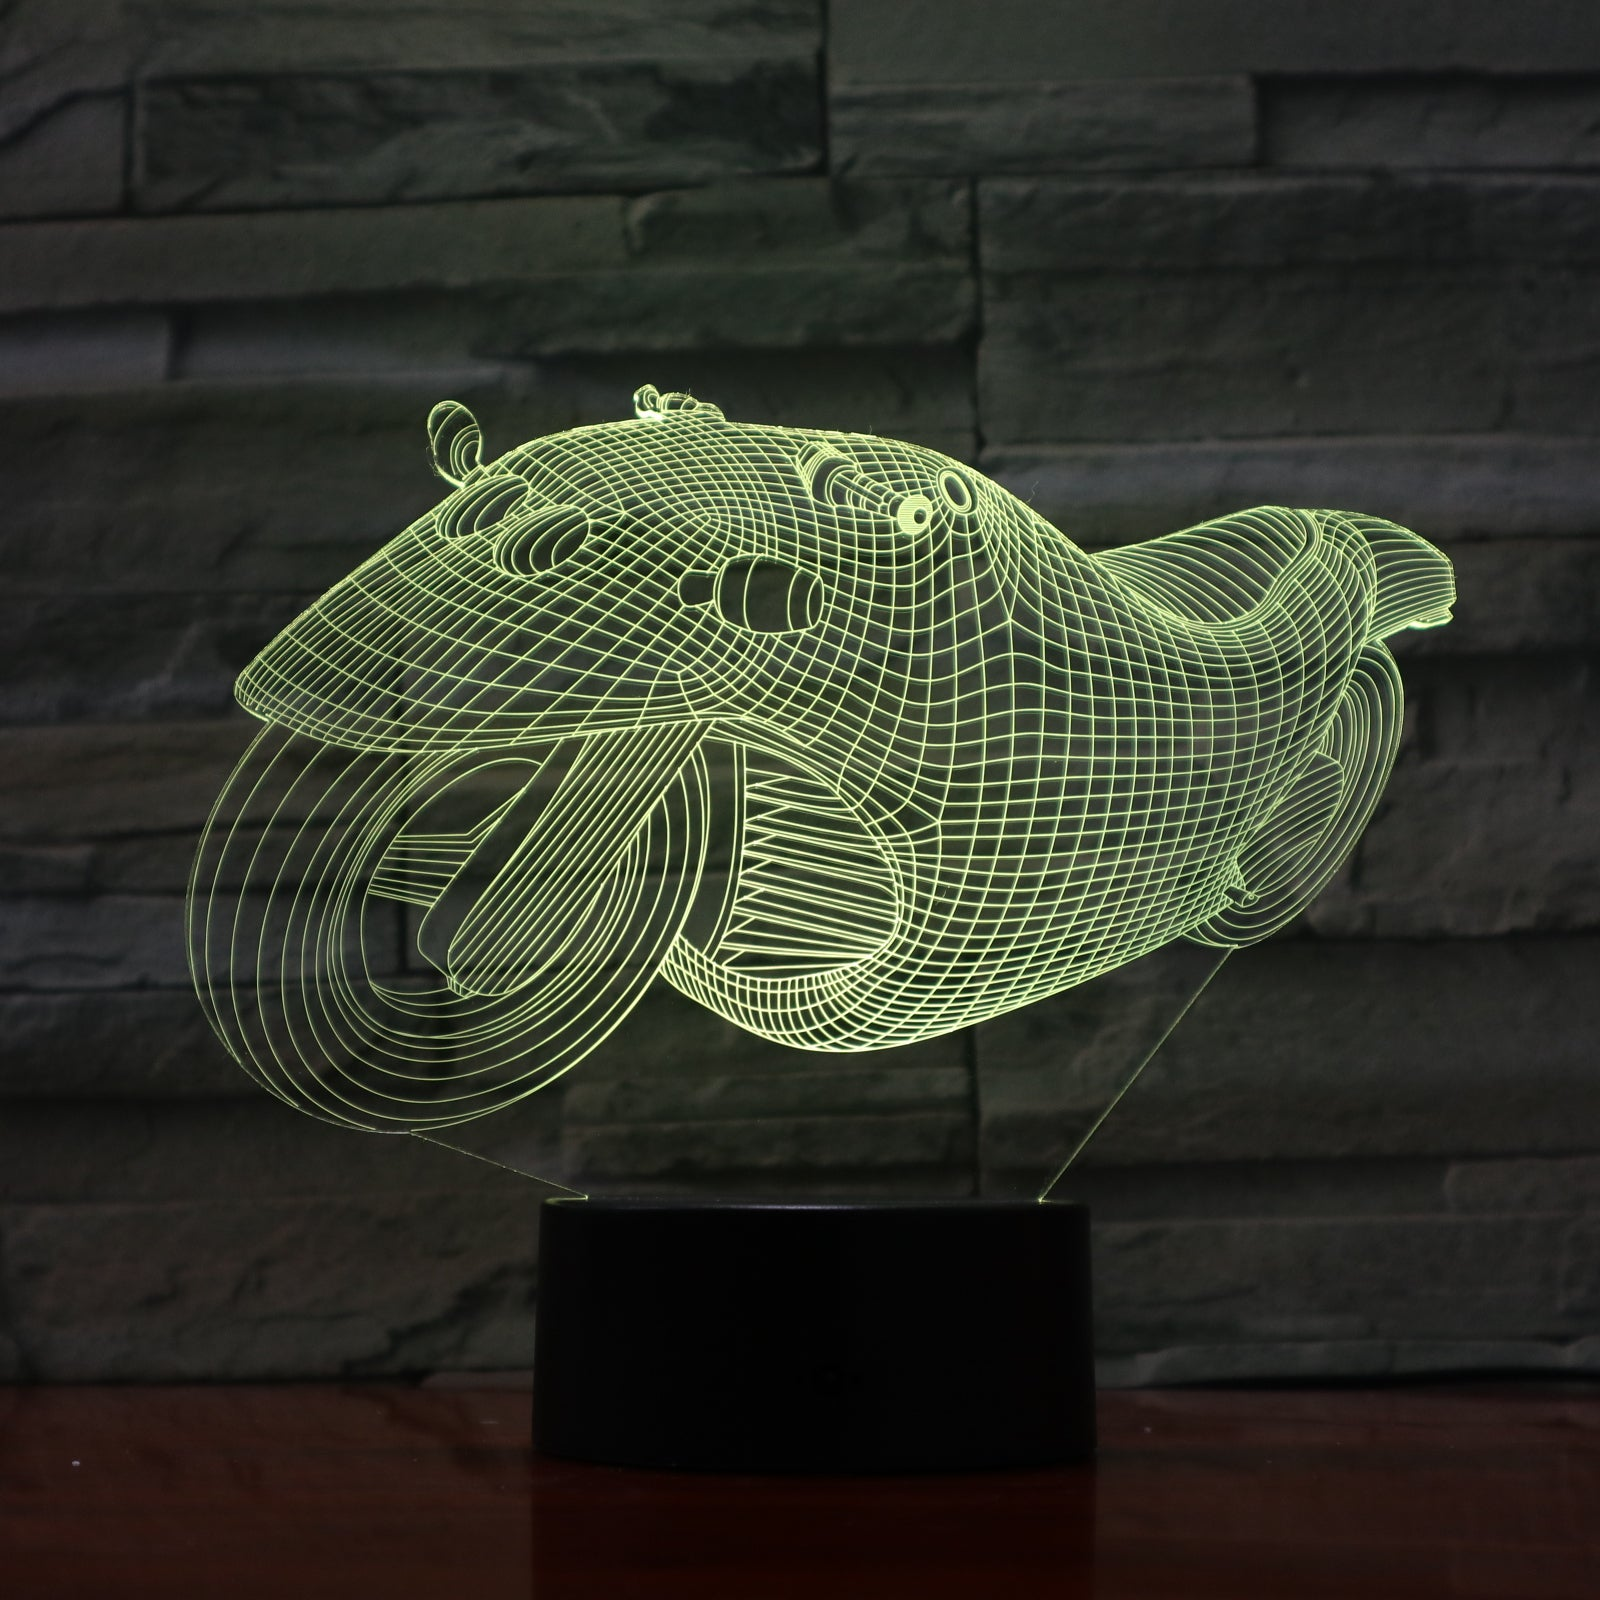 Motobike 1 - 3D Optical Illusion LED Lamp Hologram